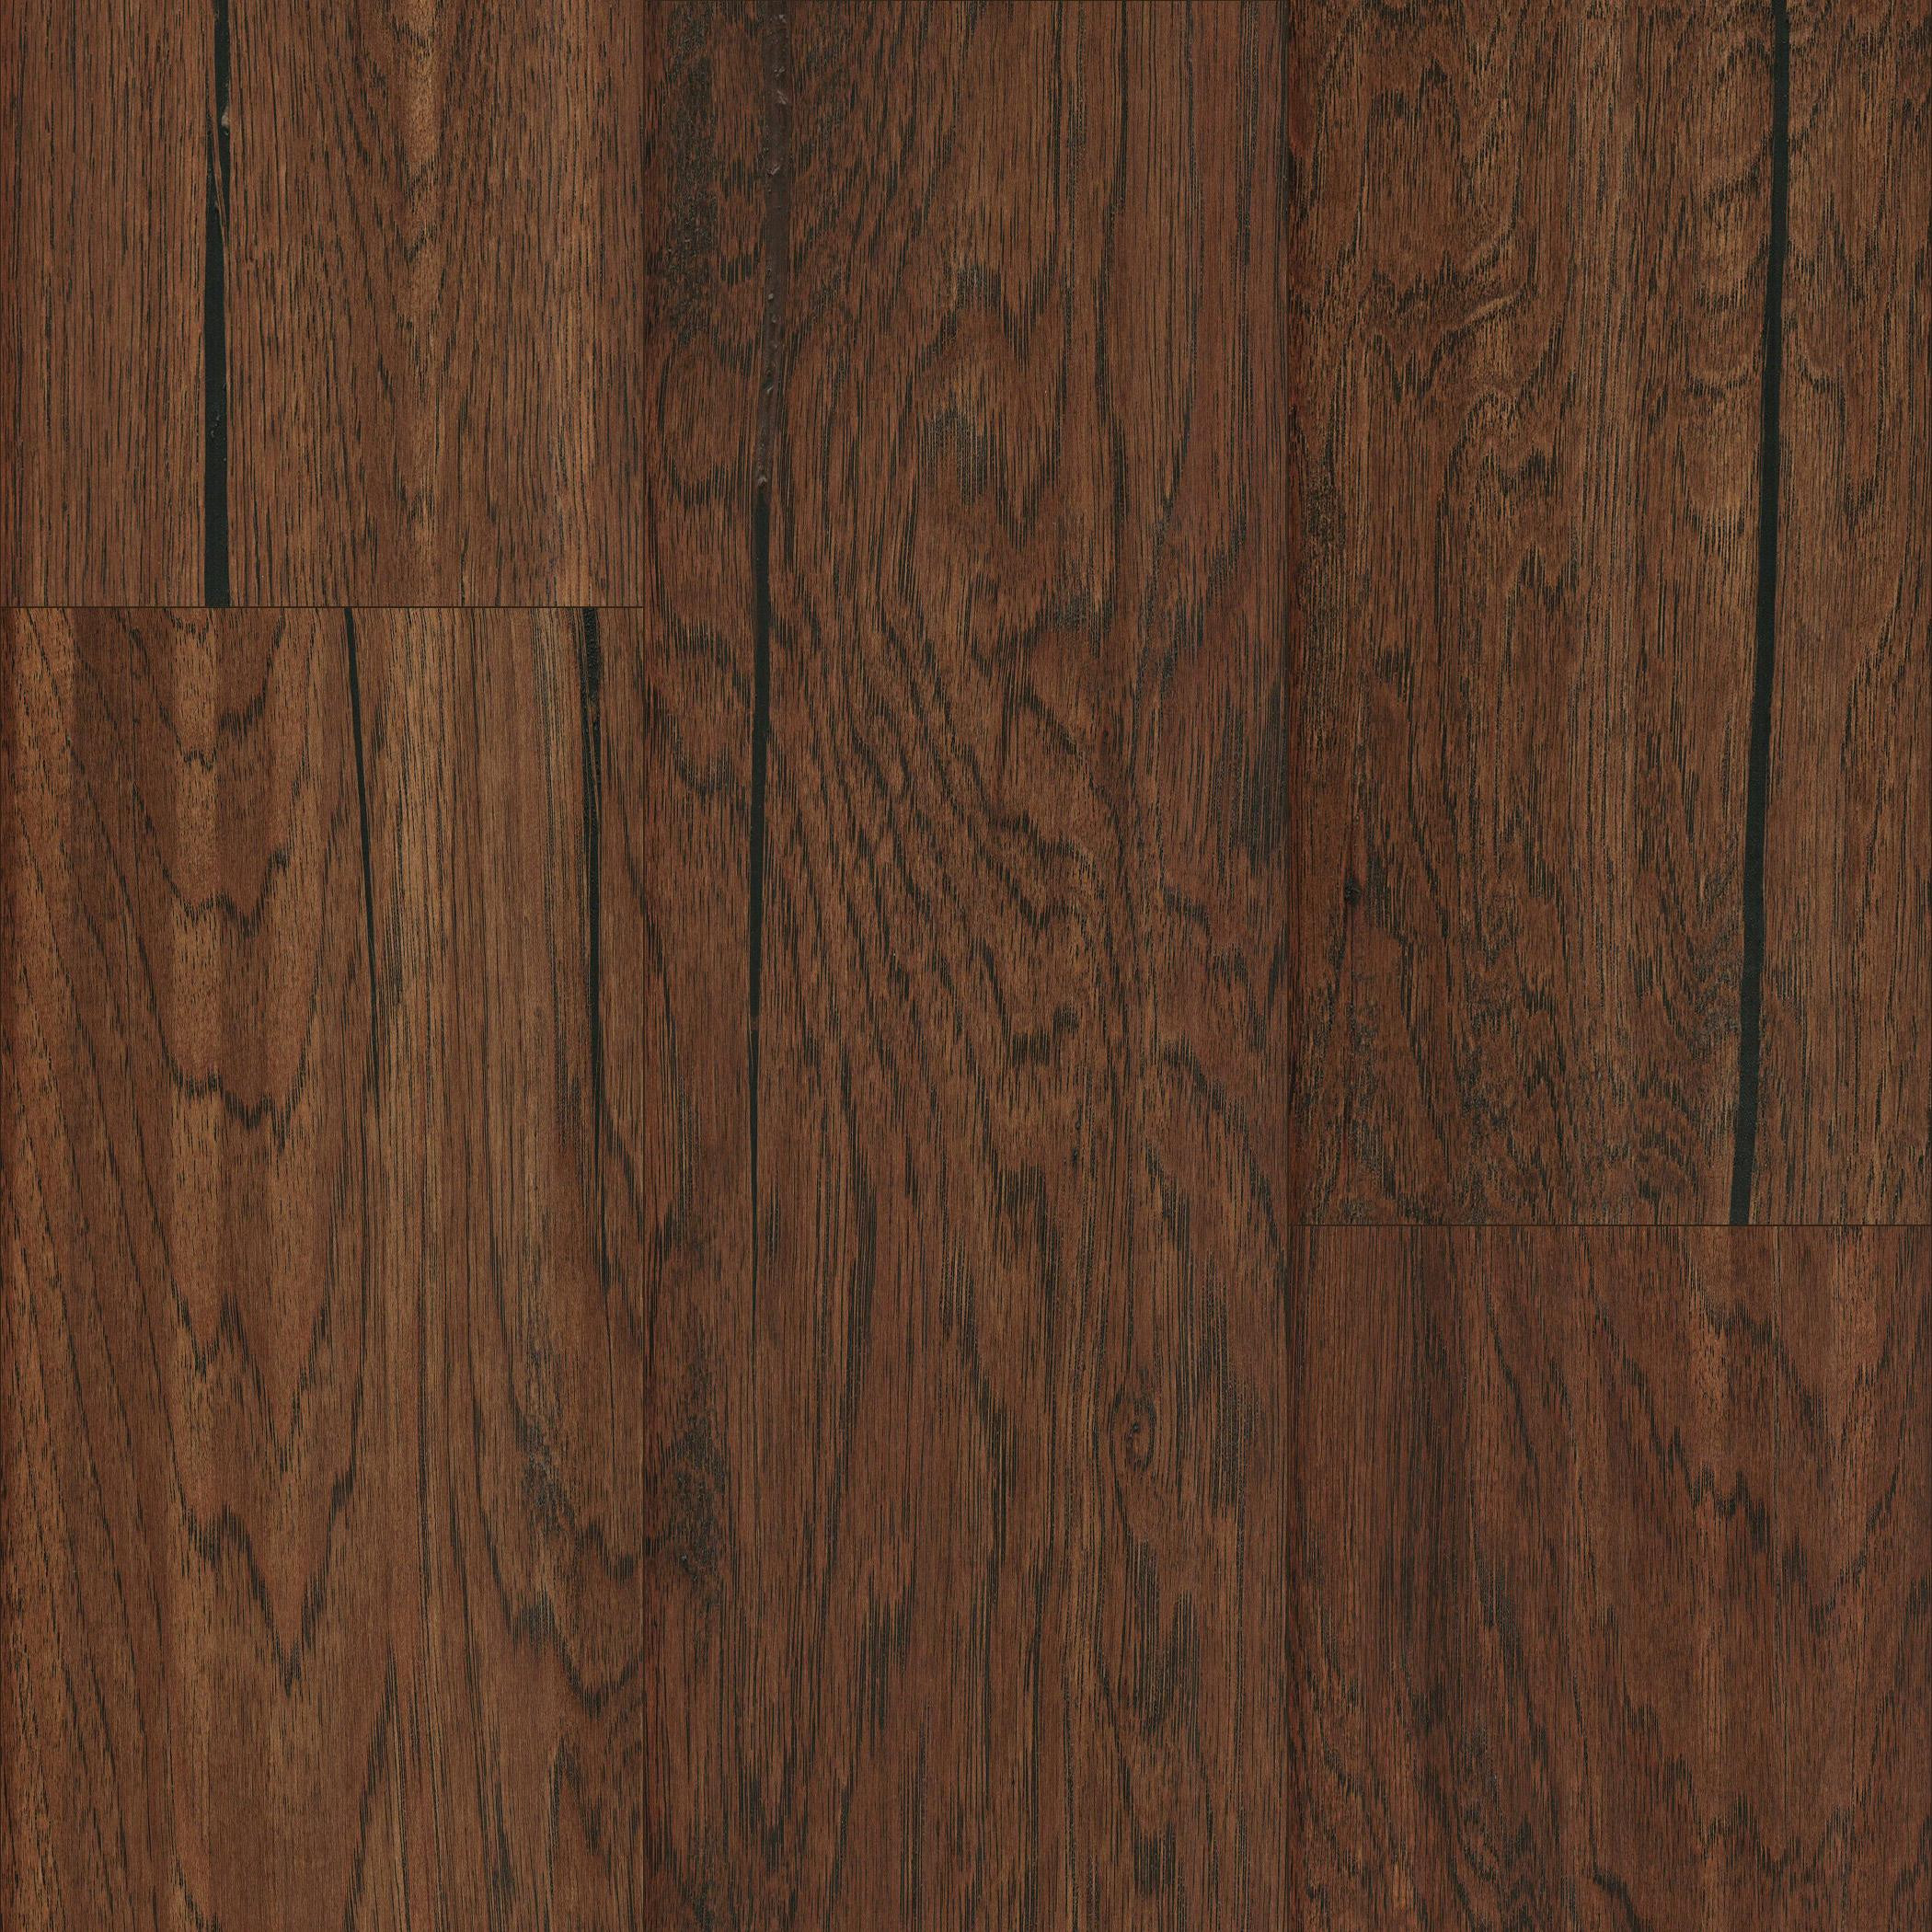 hand scraped hardwood vs engineered flooring of mullican san marco hickory provincial 7 sculpted engineered throughout mullican san marco hickory provincial 7 sculpted engineered hardwood flooring